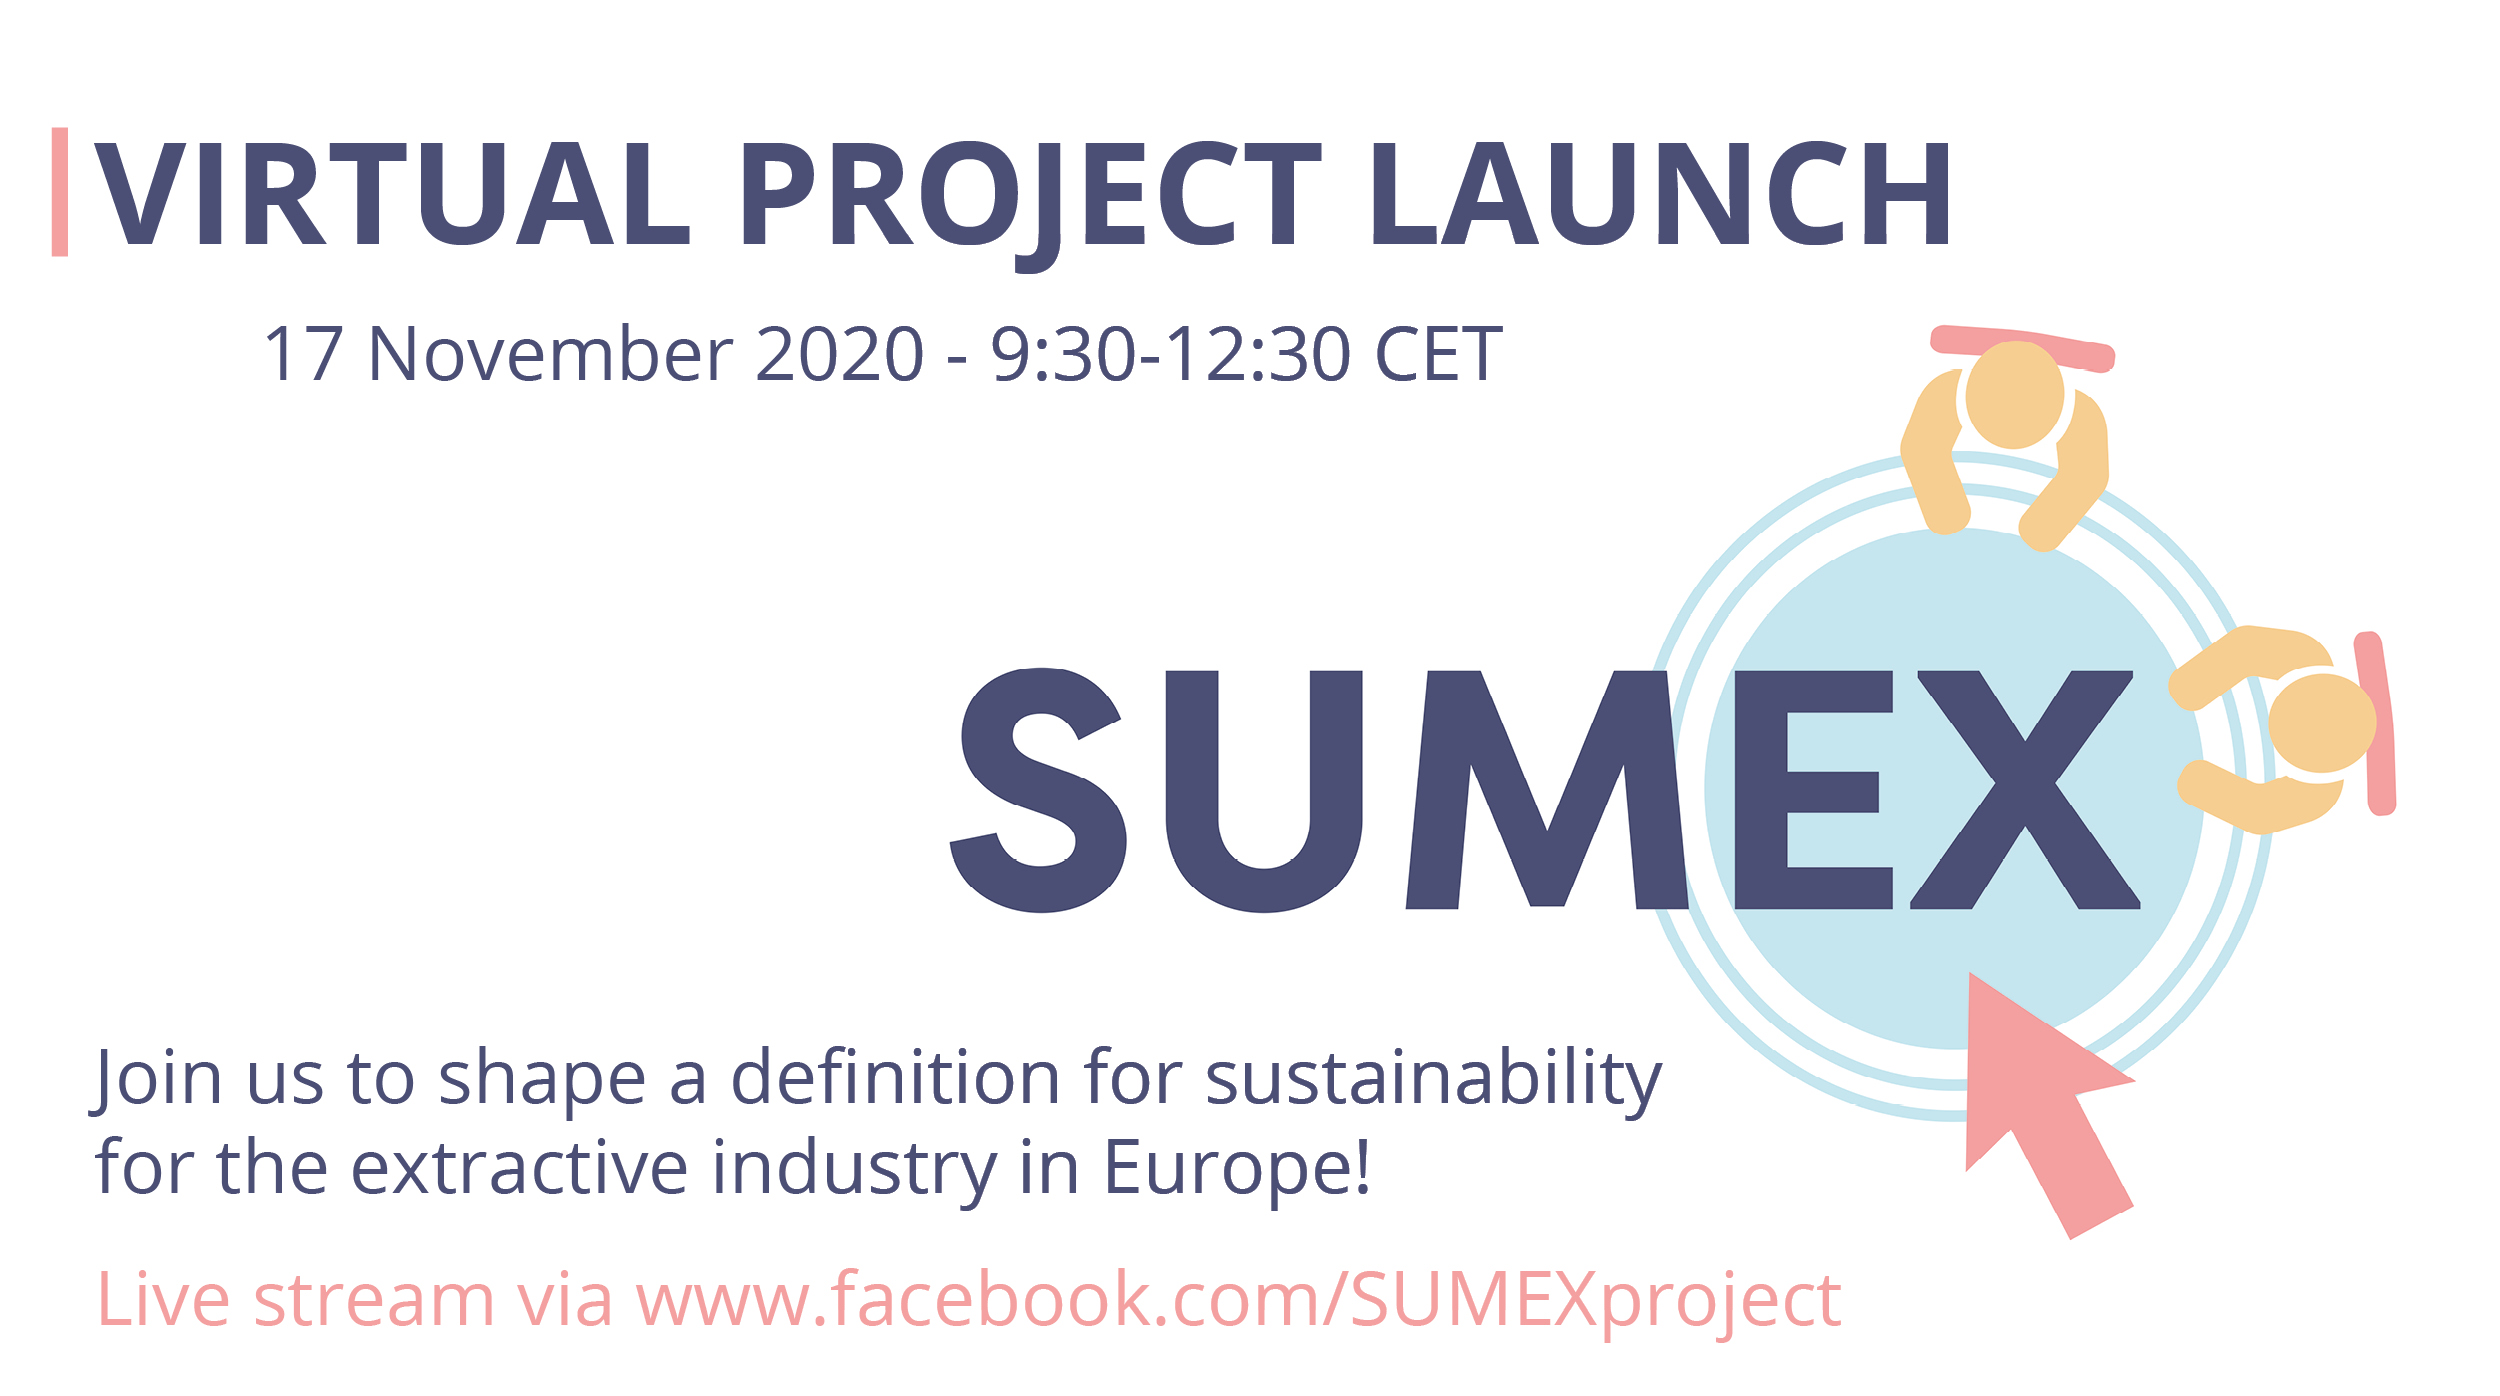 SUMEX launch event